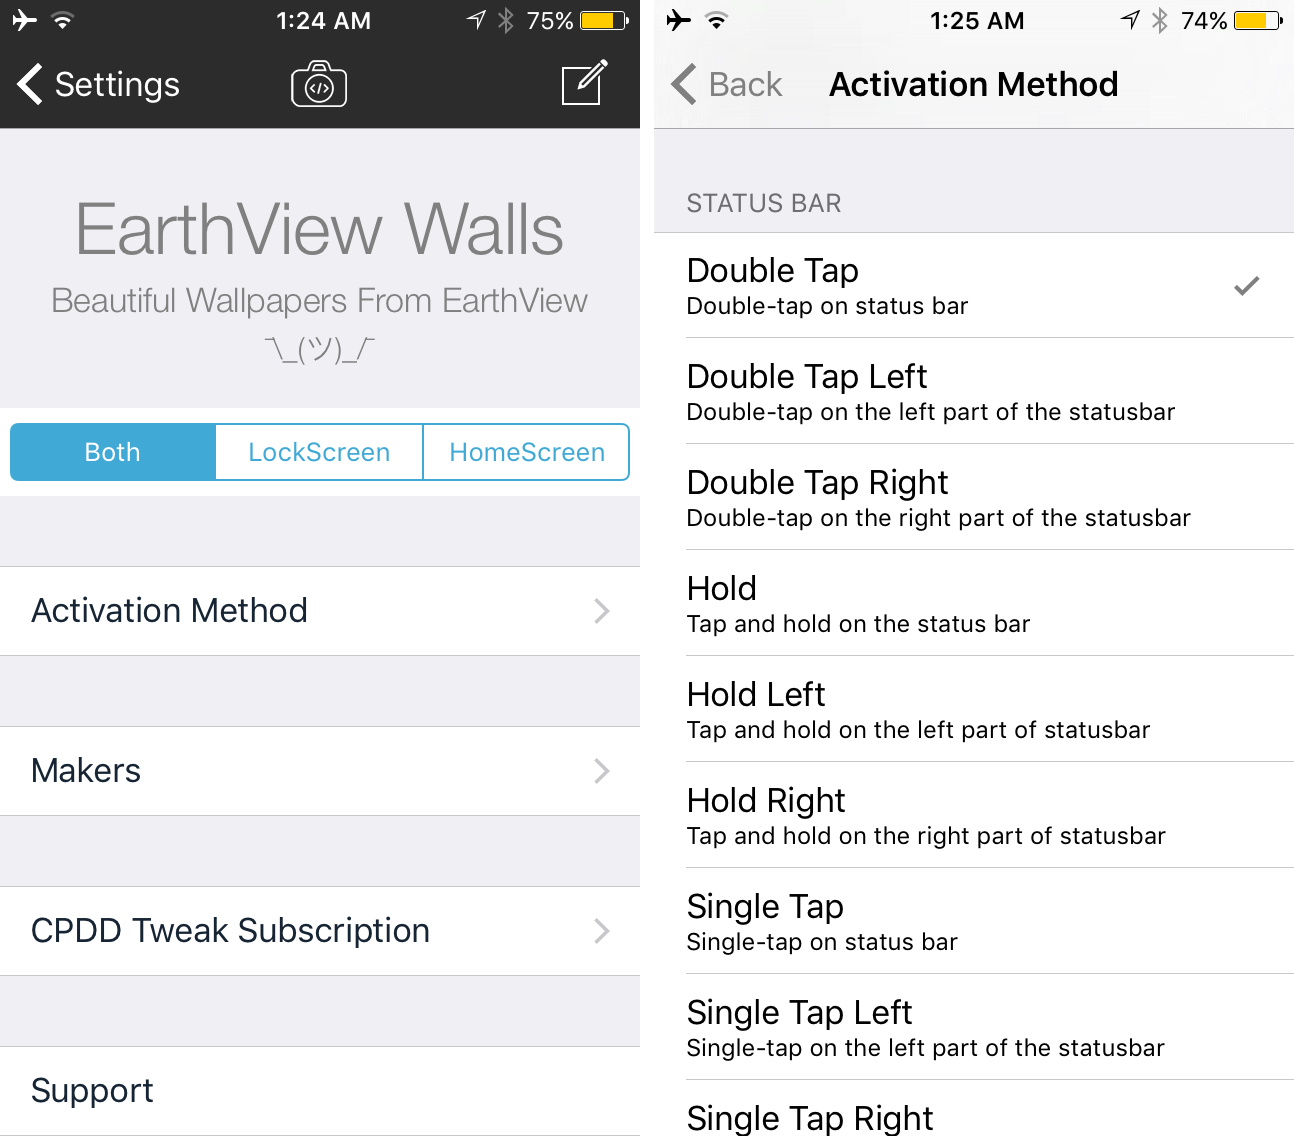 EarthView Walls Preferences pane options to configure